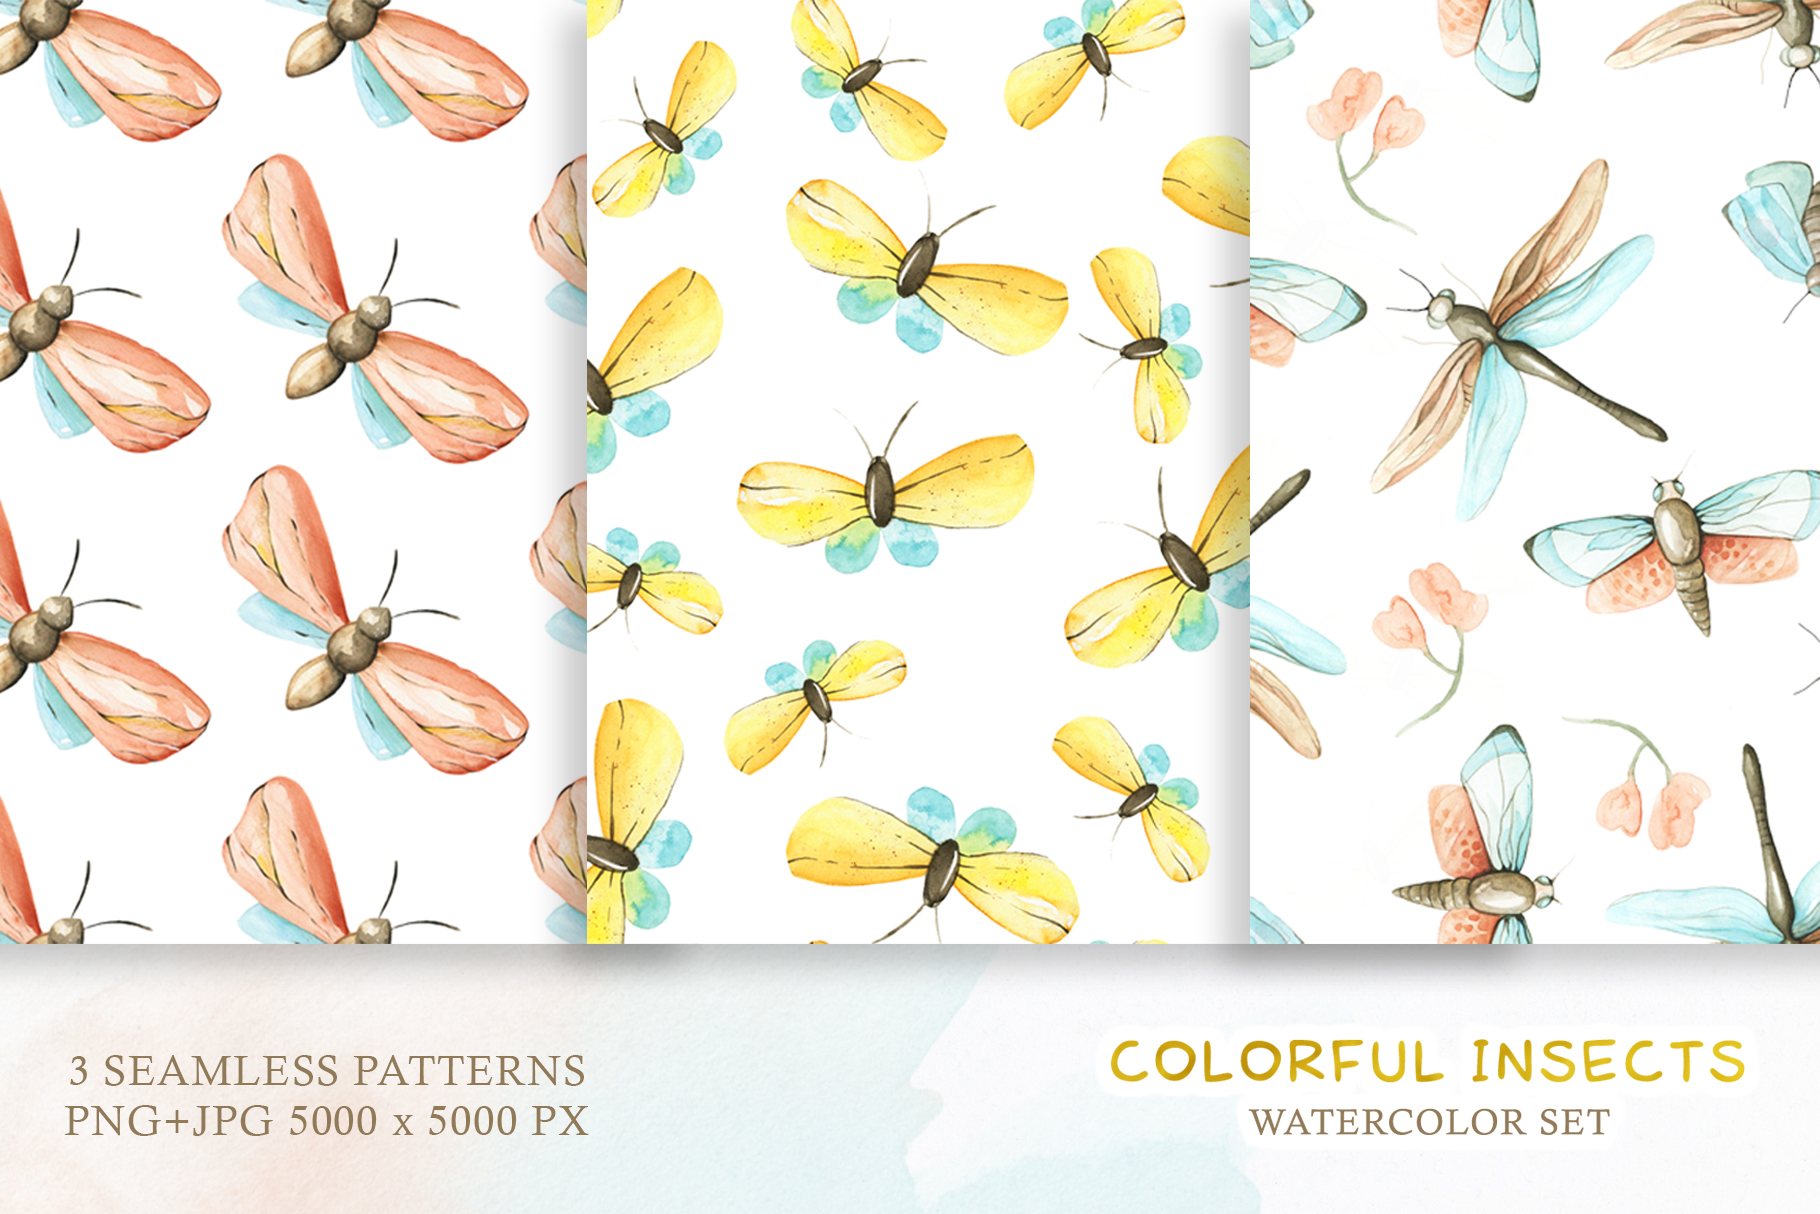 Watercolor Set Colorful Insects example image 3